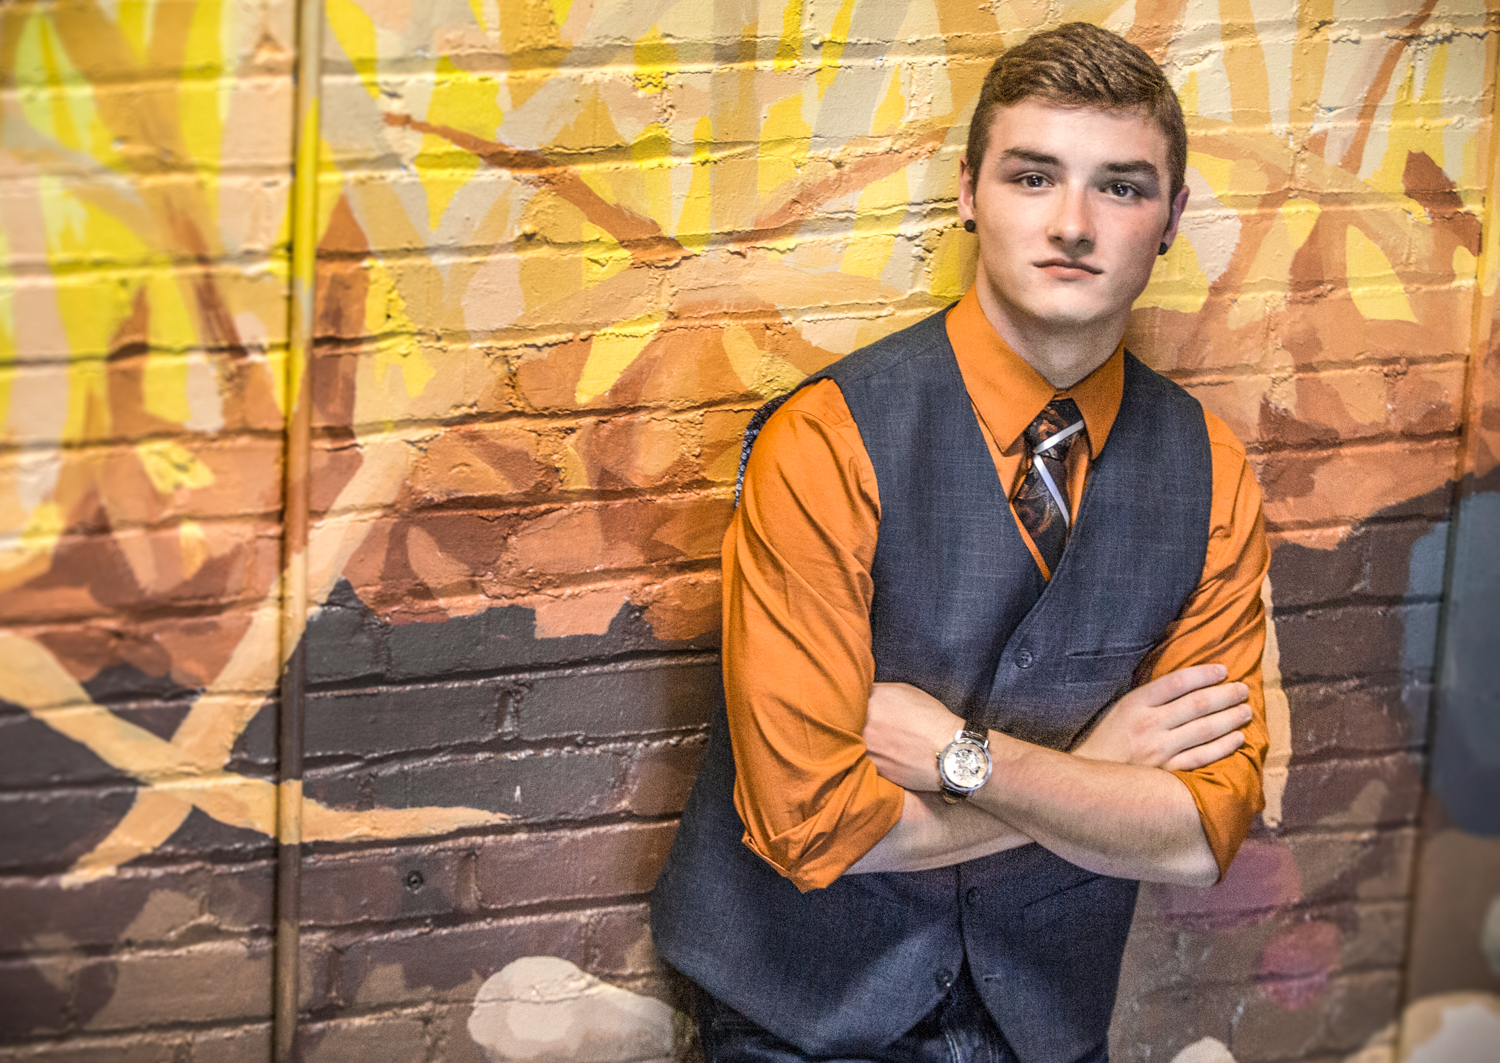 Portrait-HIgh-School-Seniors-boy-young-man-against-orange-mural-205.jpg